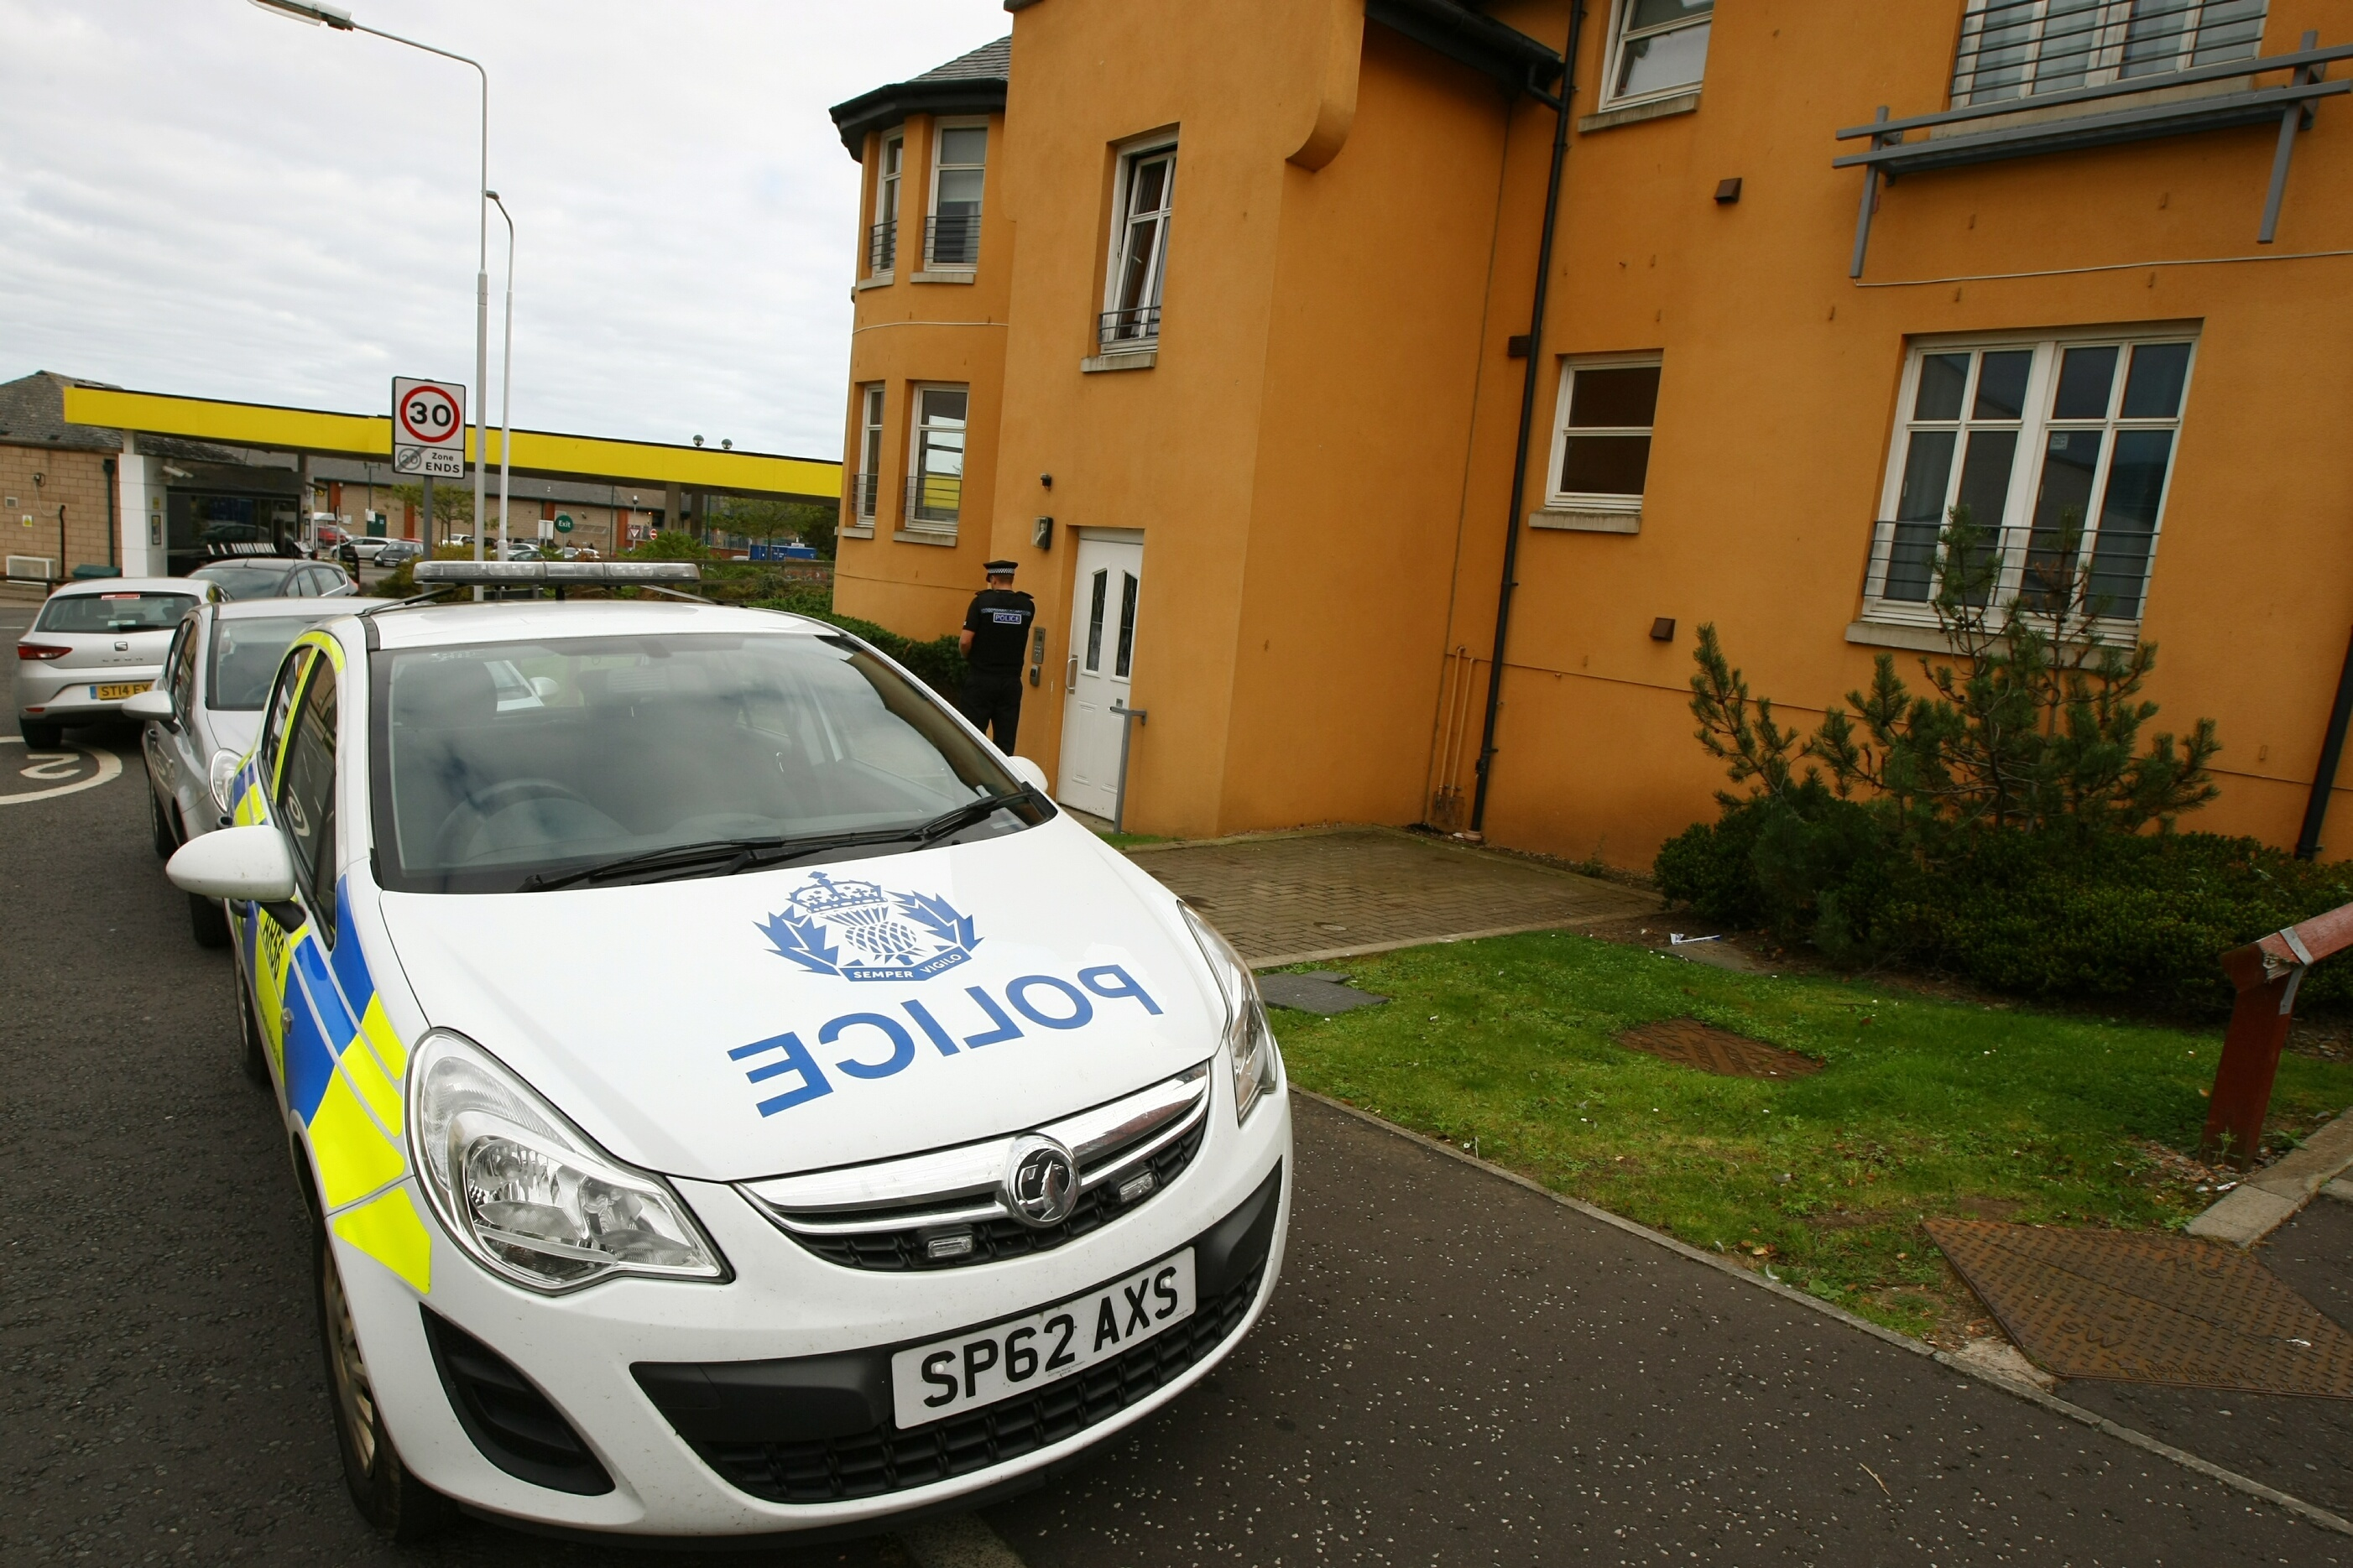 No officer was sent to Elizabeth Bowe's flat after her 999 call for help